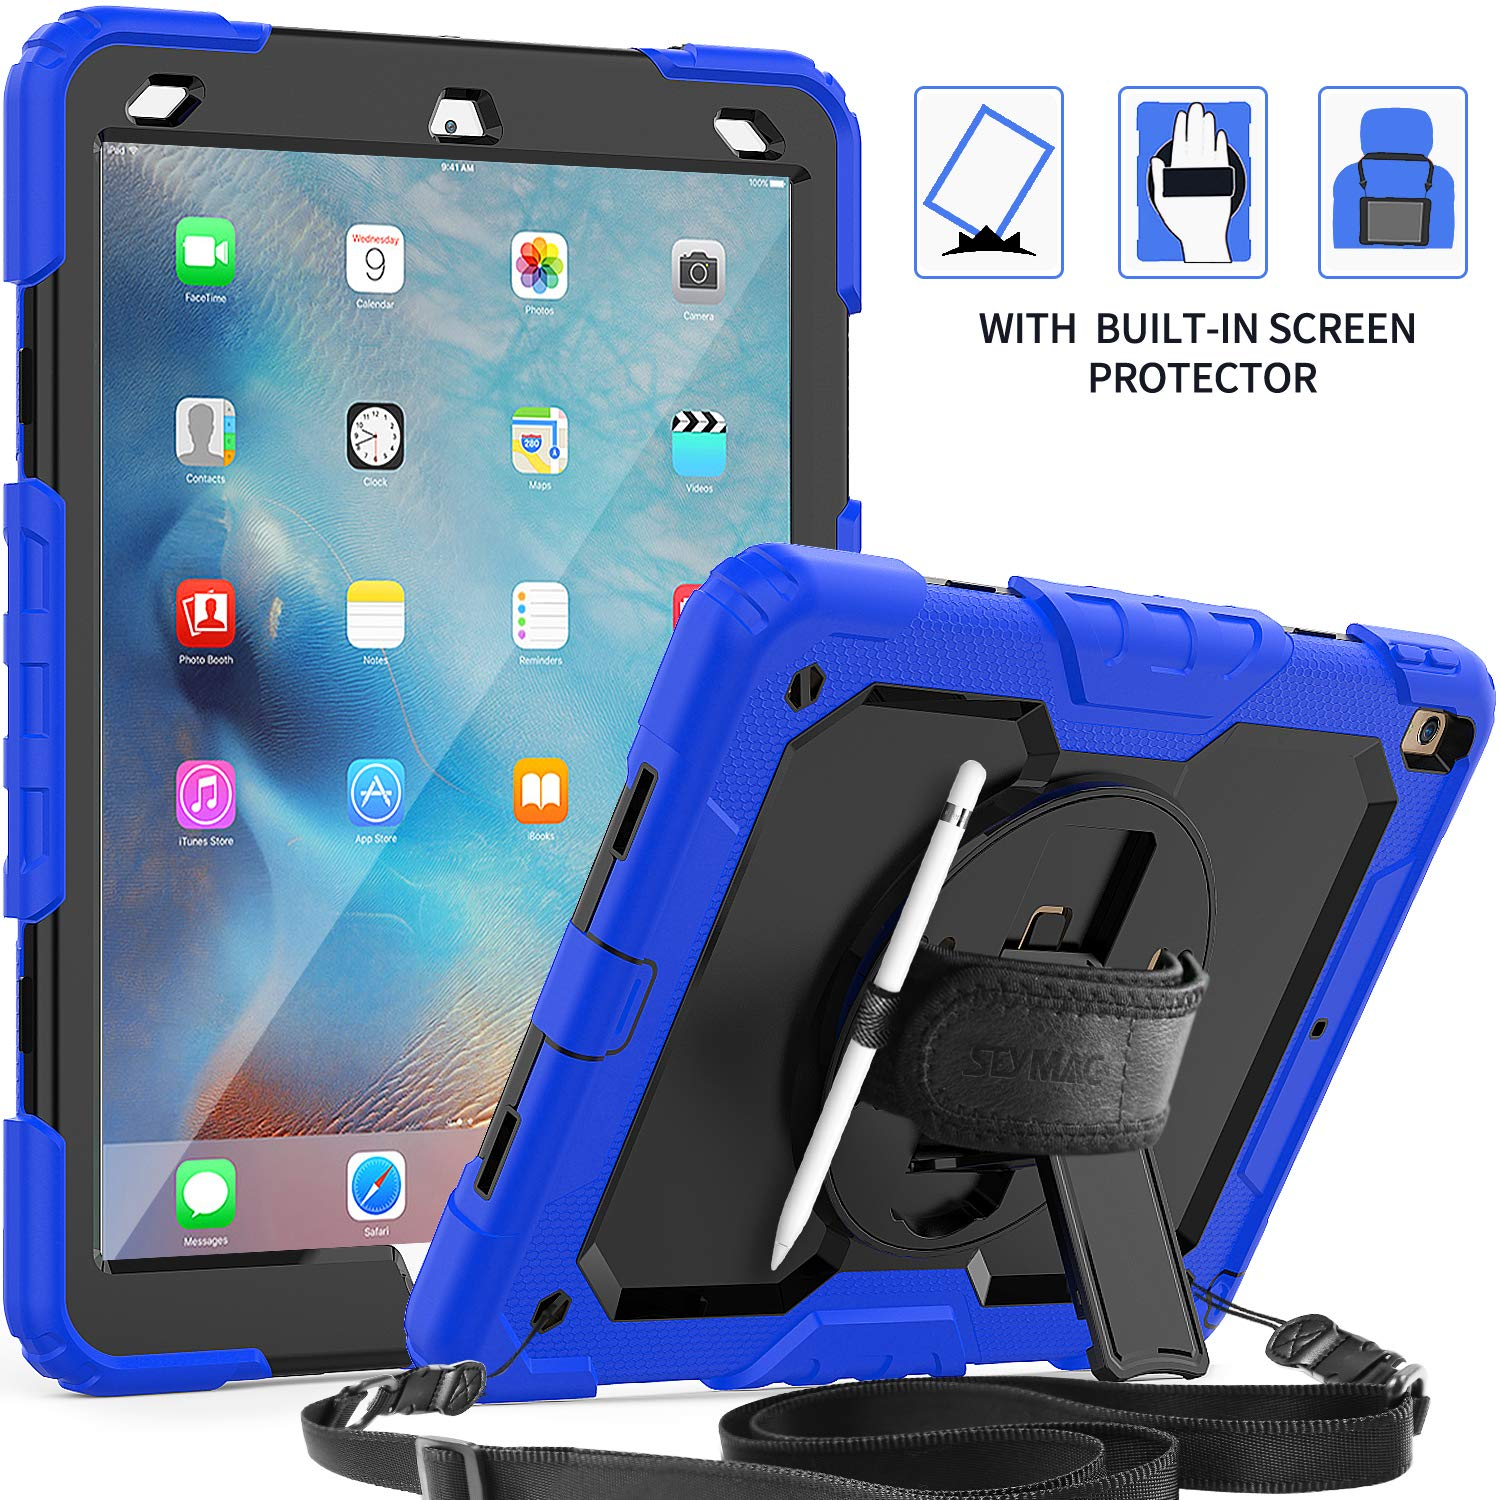 iPad Air 3 Case 2019, SEYMAC [Full Body Protection] Case with [360 Degree Rotating Stand&Hand Strap] Shoulder Strap Screen Protector Pencil Holder for iPad Air 3 2019/iPad Pro 10.5'' 2017-Blue/Black